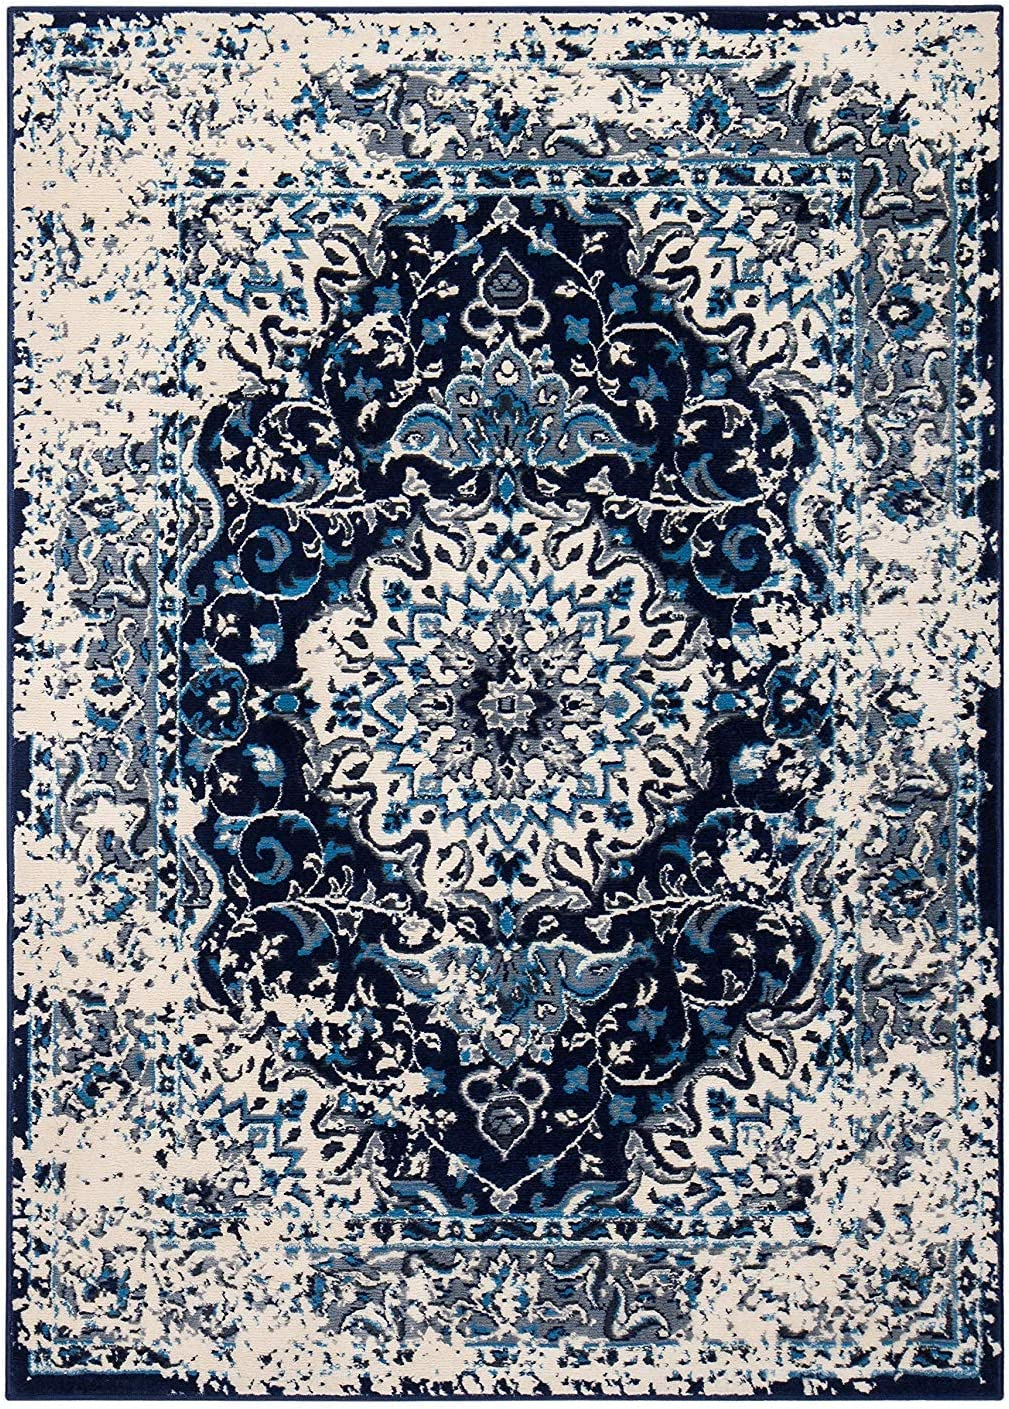 Anji Mountain Brushed Wave Area Rug 3 Blue Sale Special Price Time sale Grey x 5-Feet